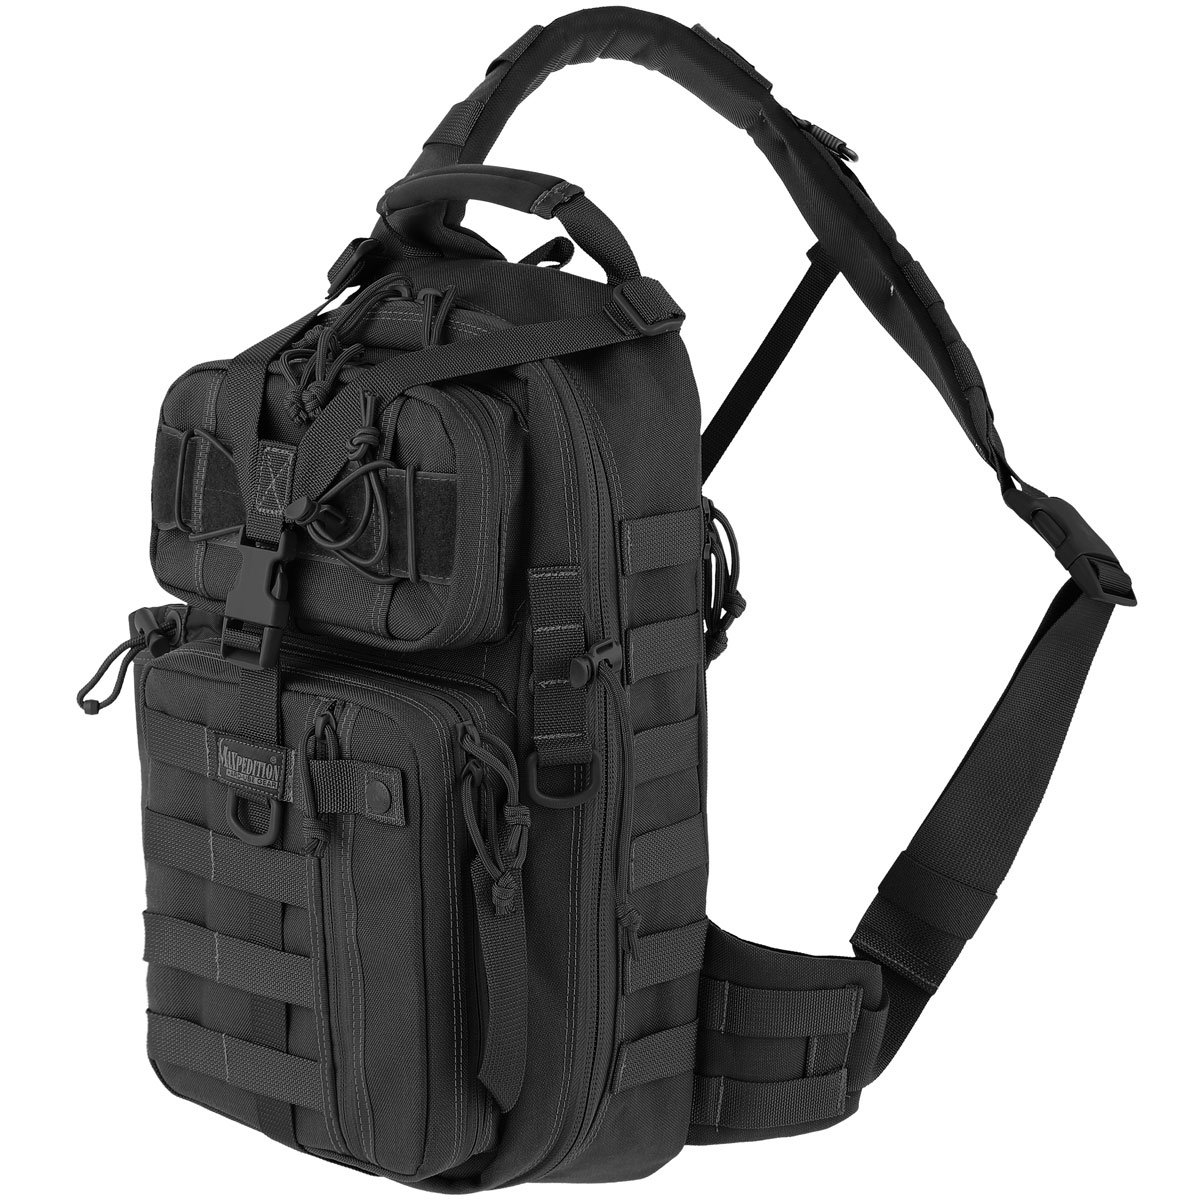 Balo Maxpedition Sitka Gearslinger – Black